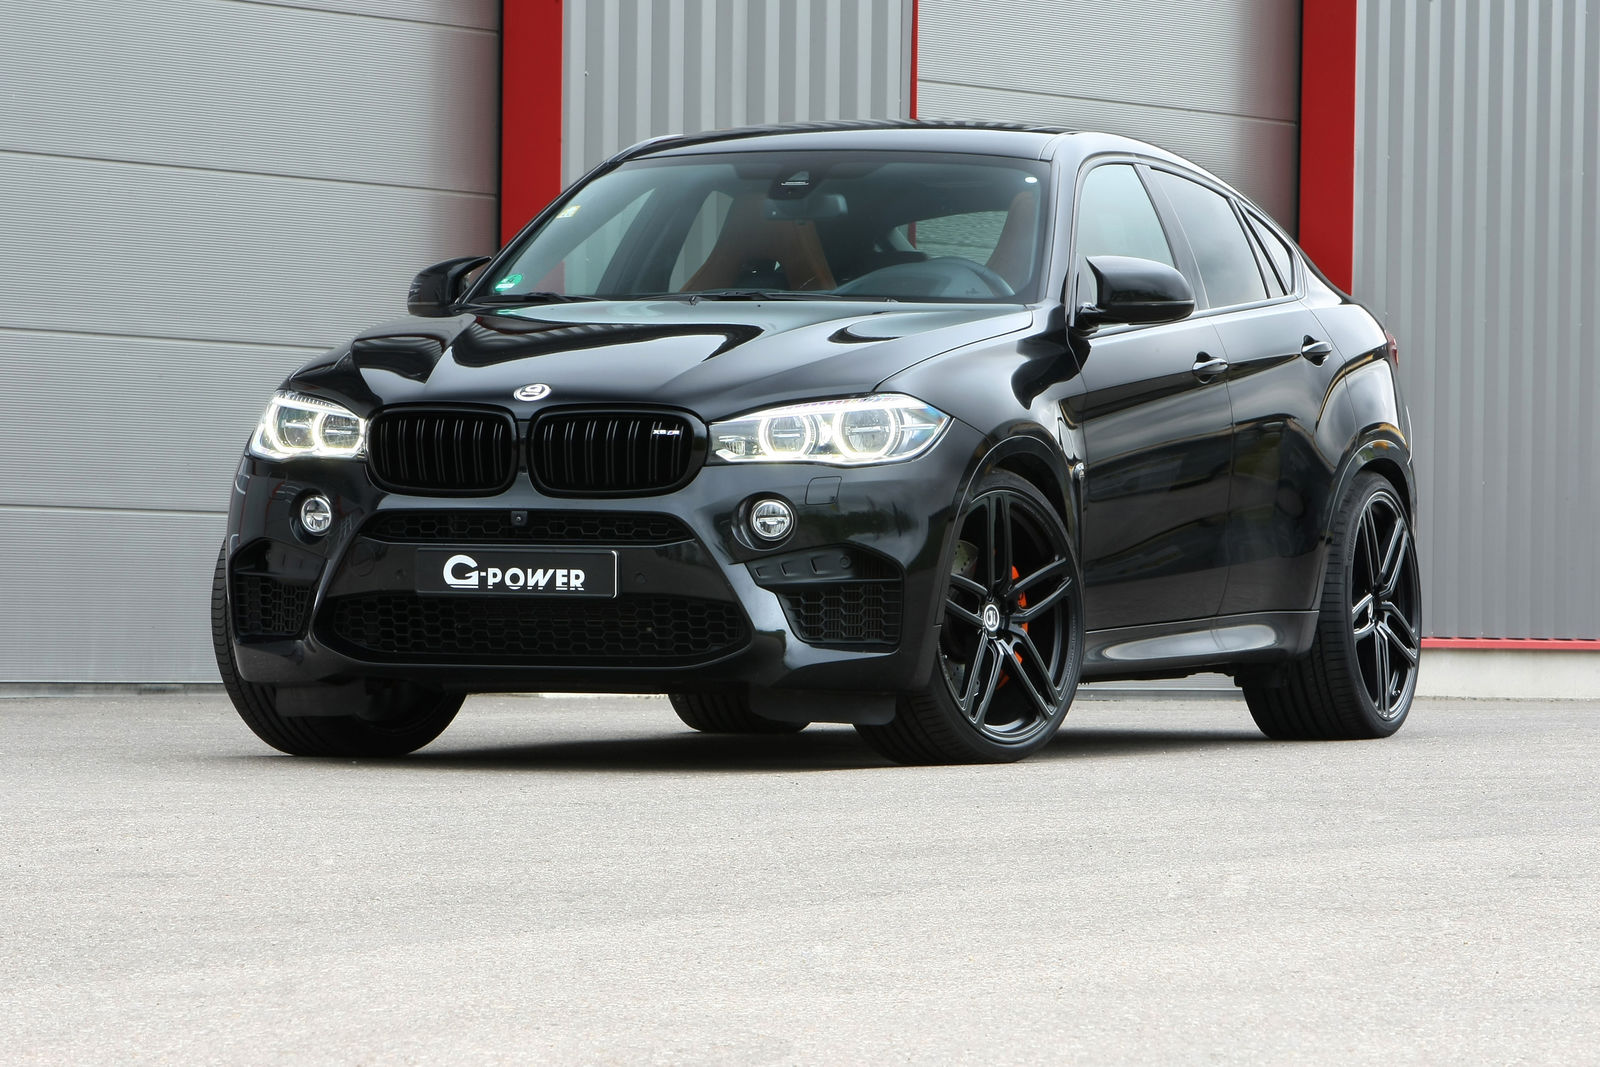 G Power Bmw X6 M Delivers 739 Horsepower